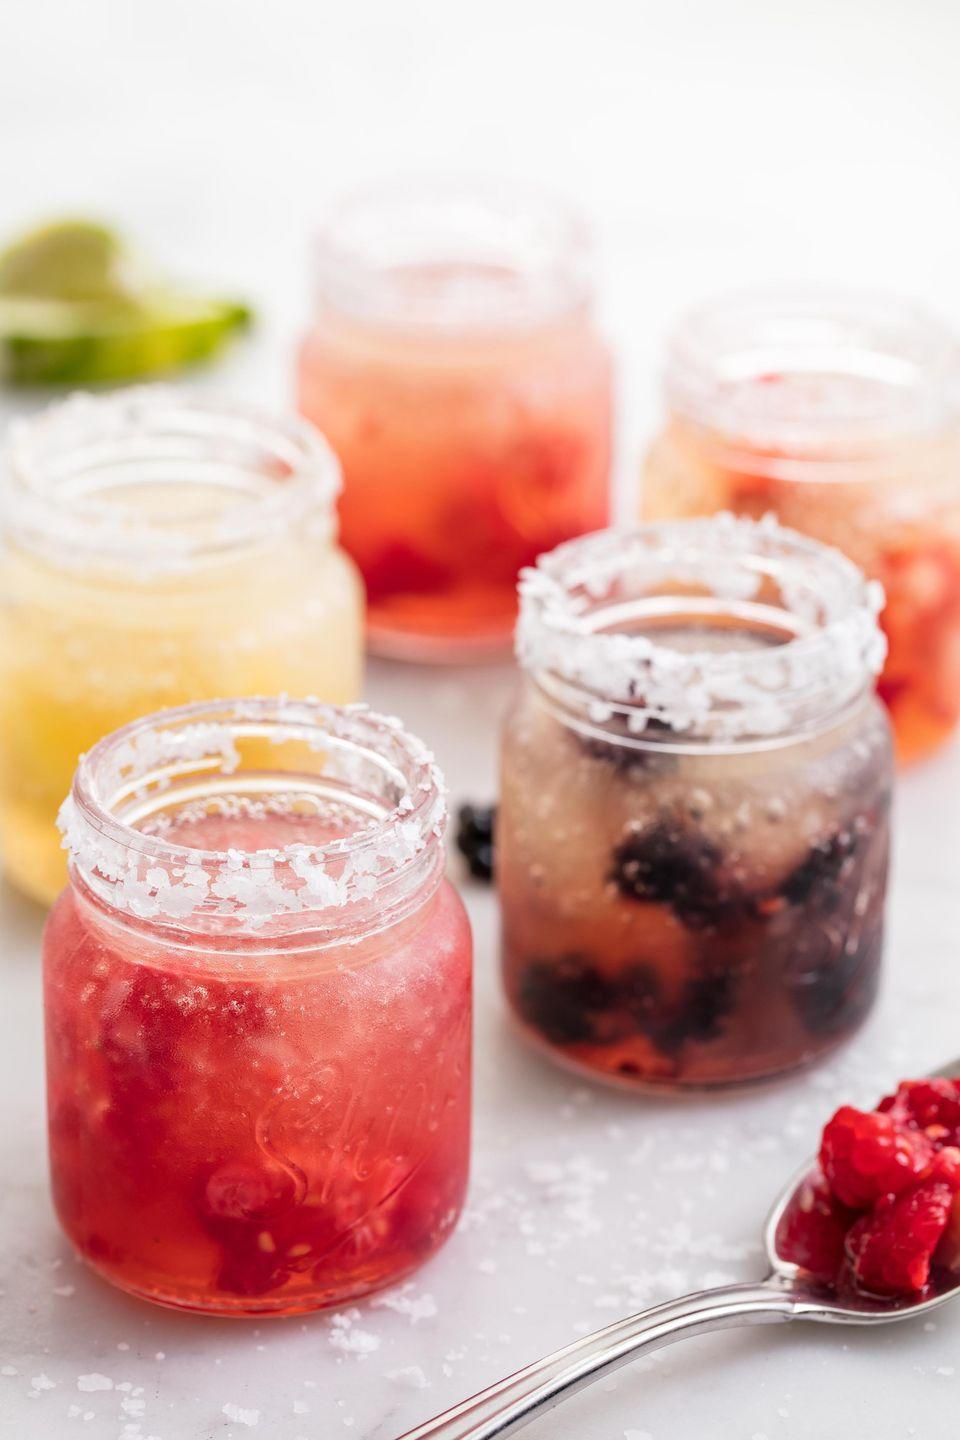 """<p>These drinks are customizable and totally adorable!</p><p>Get the recipe from <a href=""""https://www.delish.com/entertaining/recipes/a42927/slushy-margarita-shots/"""" rel=""""nofollow noopener"""" target=""""_blank"""" data-ylk=""""slk:Delish"""" class=""""link rapid-noclick-resp"""">Delish</a>.</p>"""